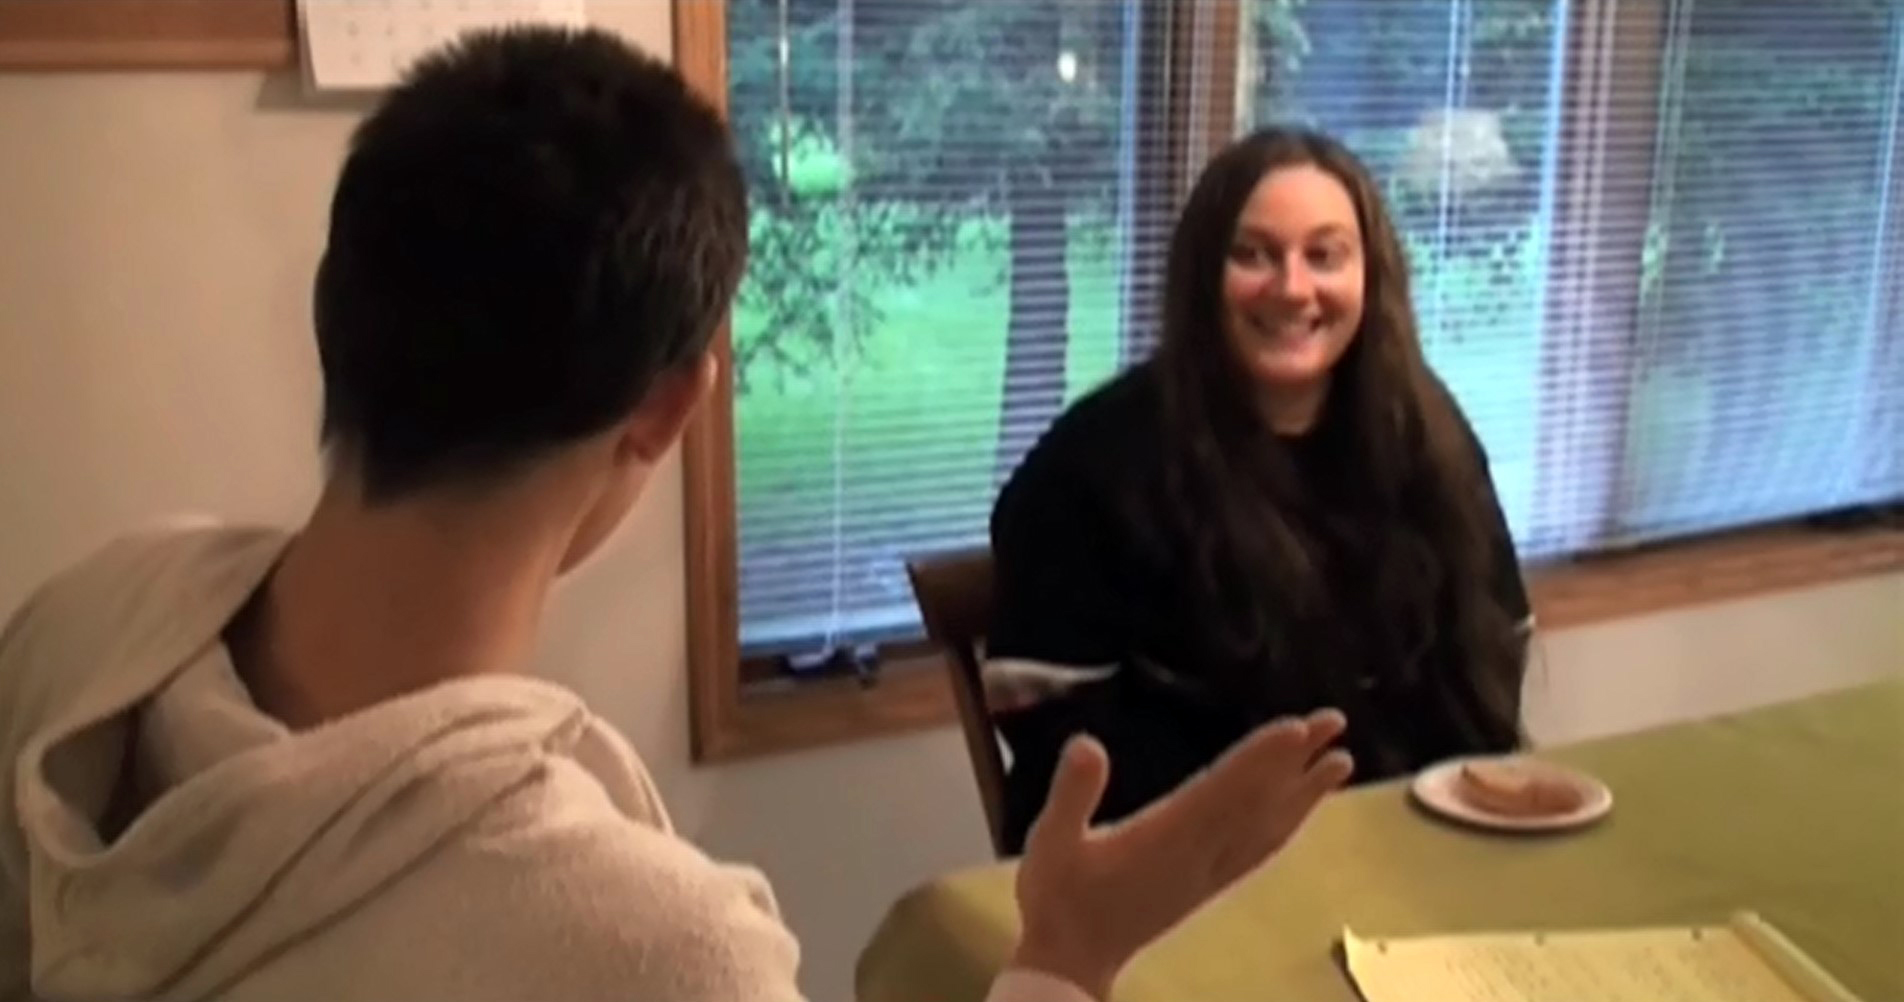 Image of two people talking